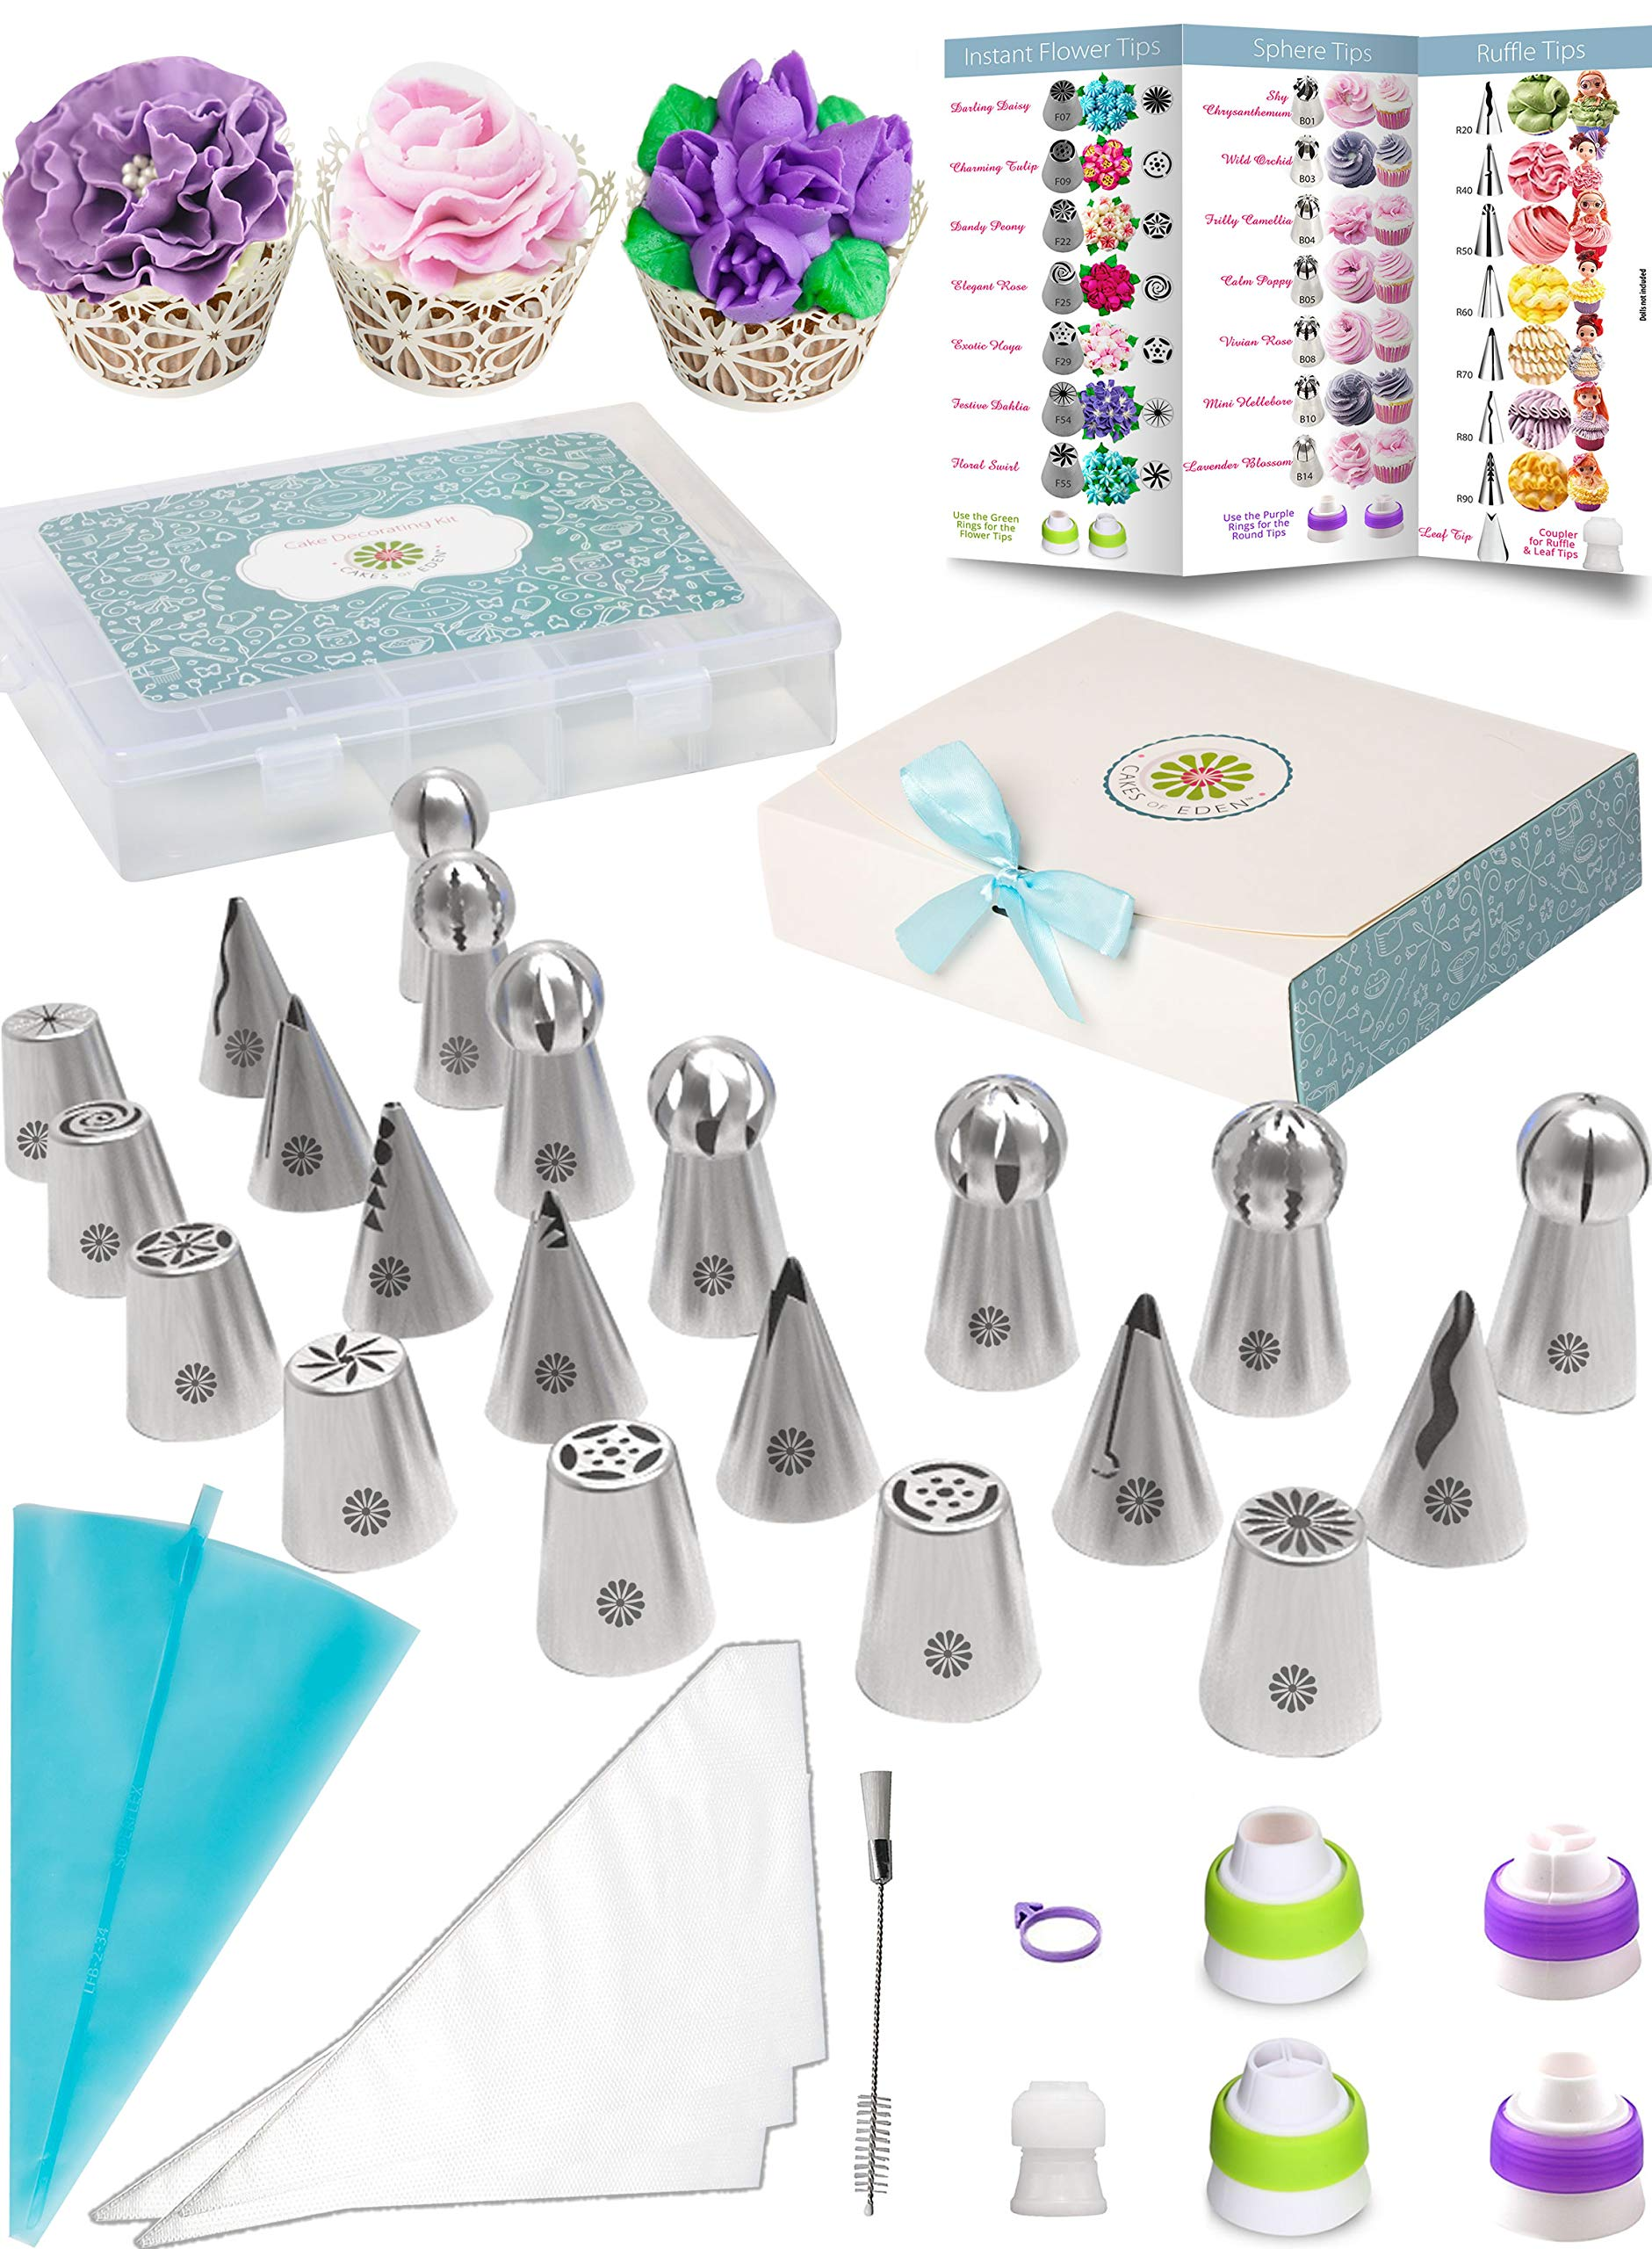 (69pc) Quick'nEasy Cake Decorating Supplies Kit - 3in1 Russian Piping Tips Set, Icing Bags, User Guide, Cupcake Wrappers In Cute Gft Box. Perfect for Making Flower Frosting | Baking Memories Together by Cakes of Eden (Image #1)